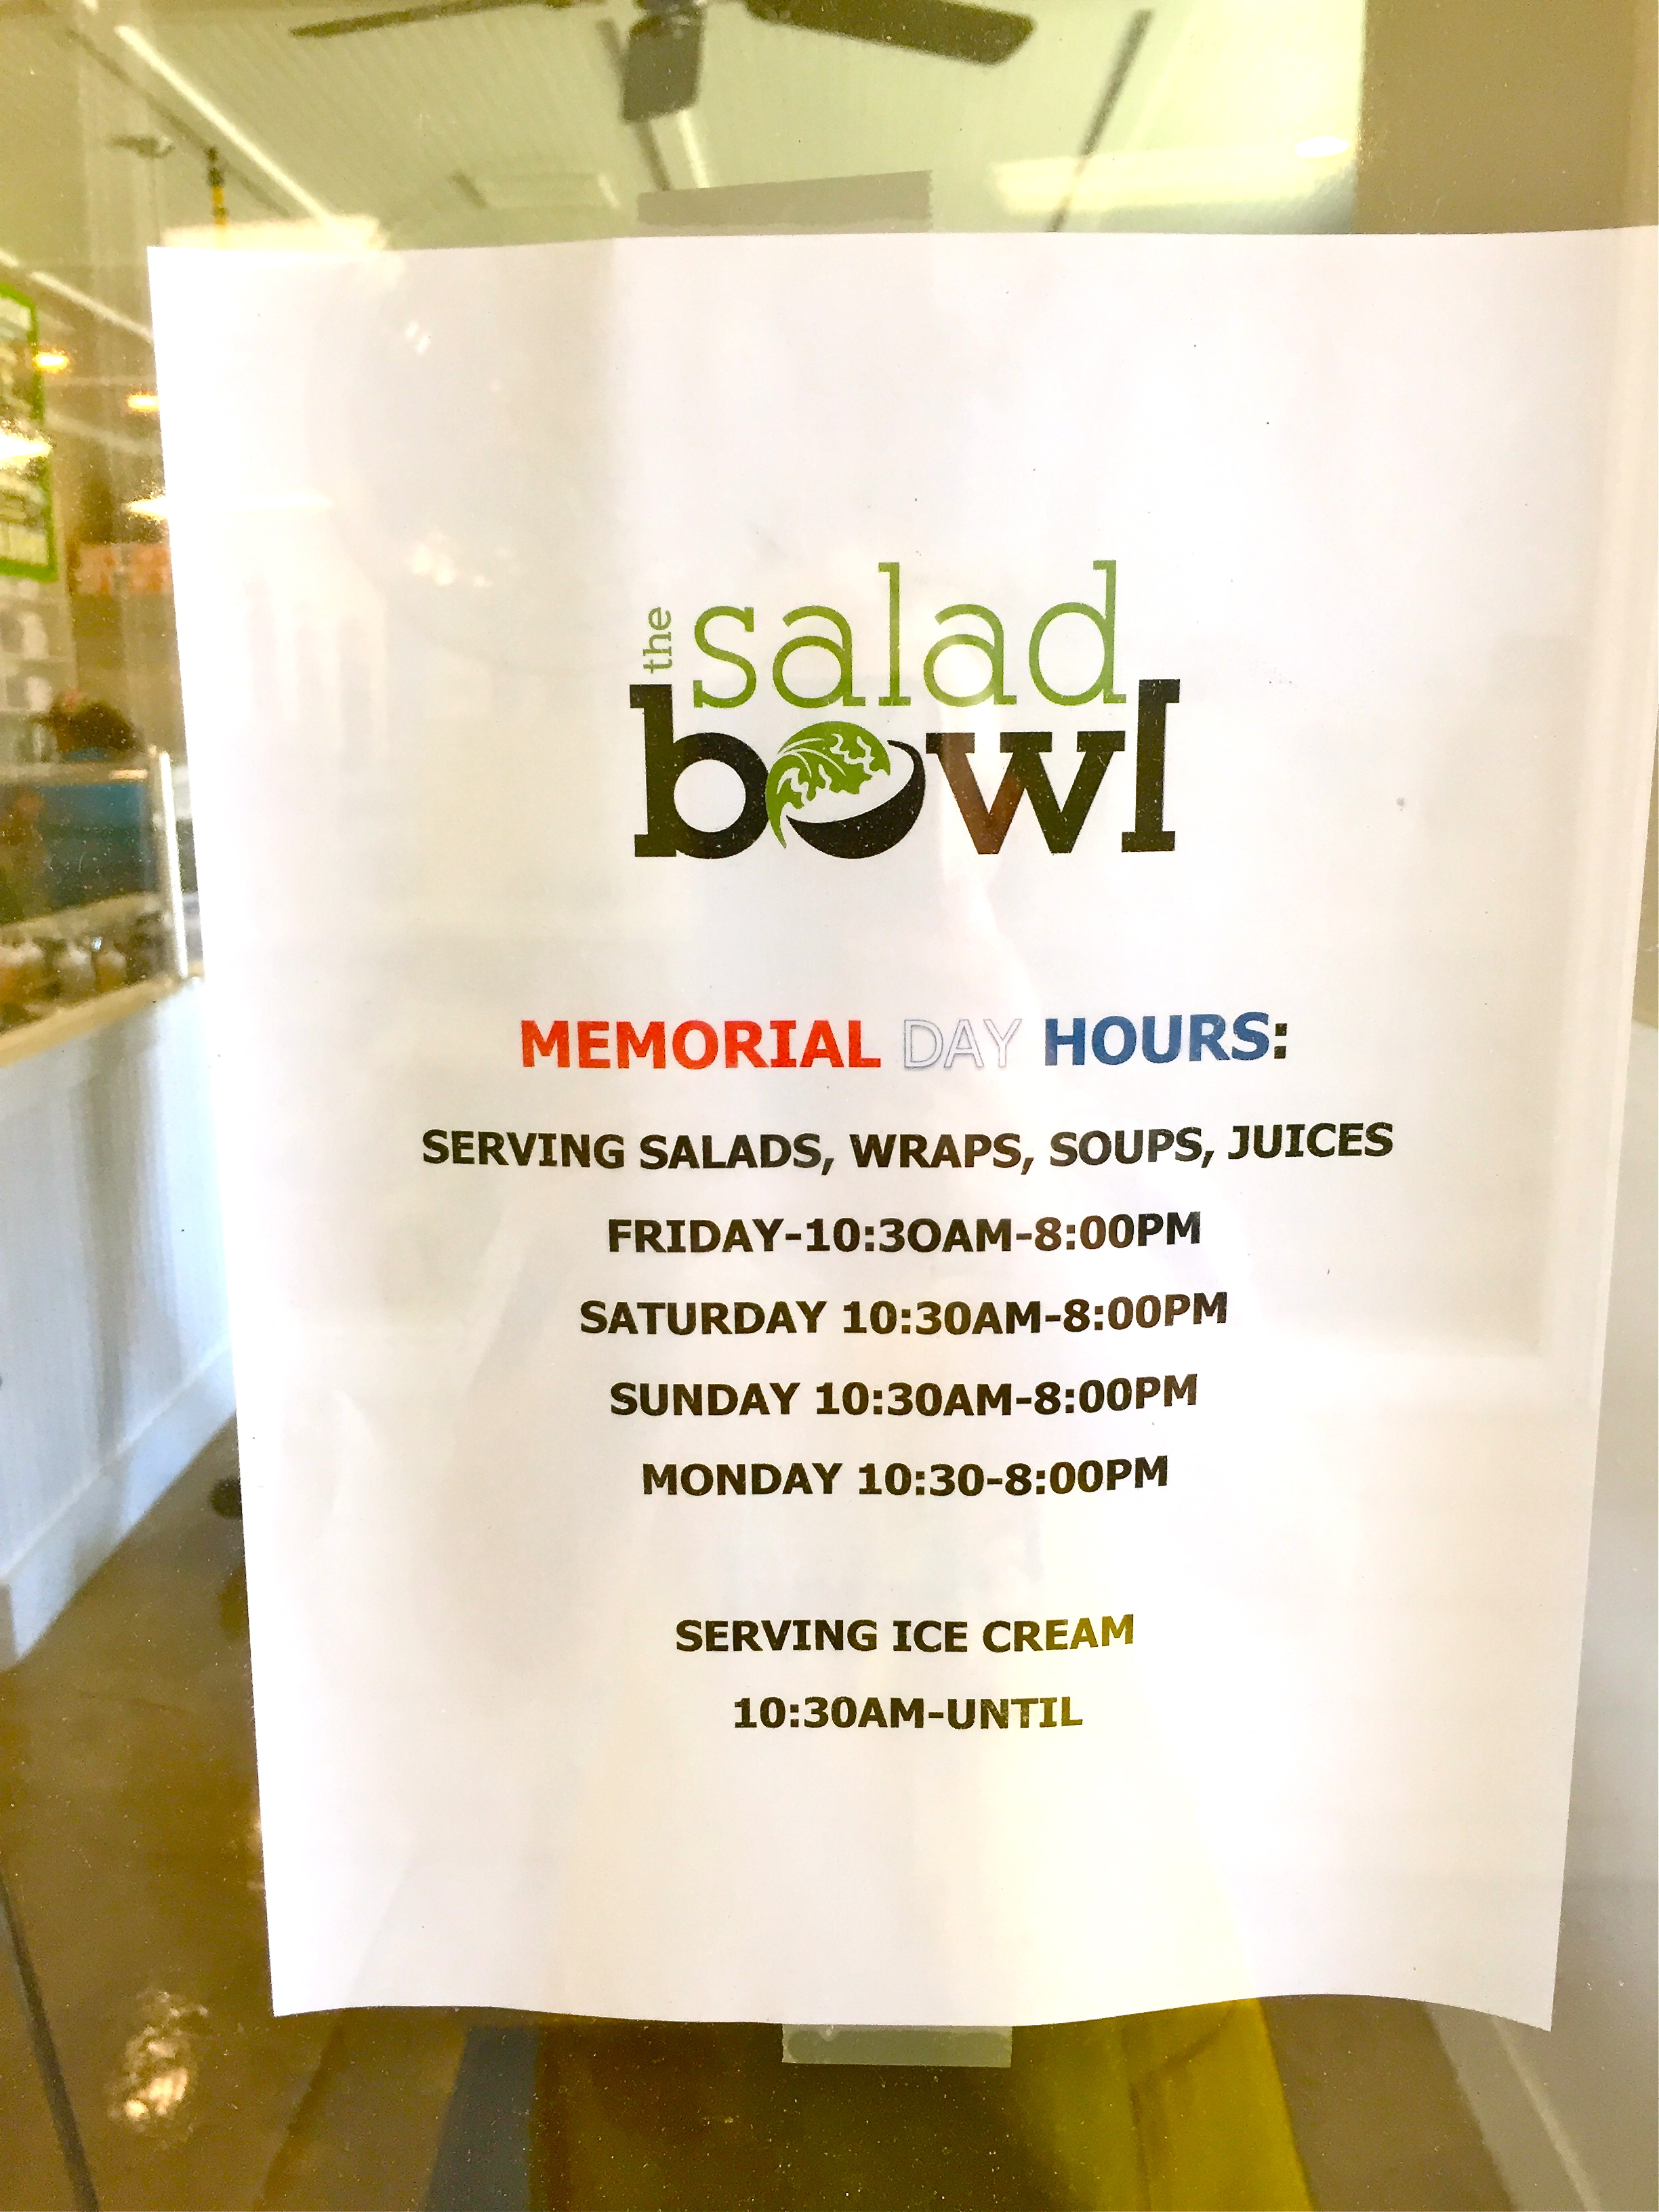 Memorial Day Holiday Hours The Salad Bowl